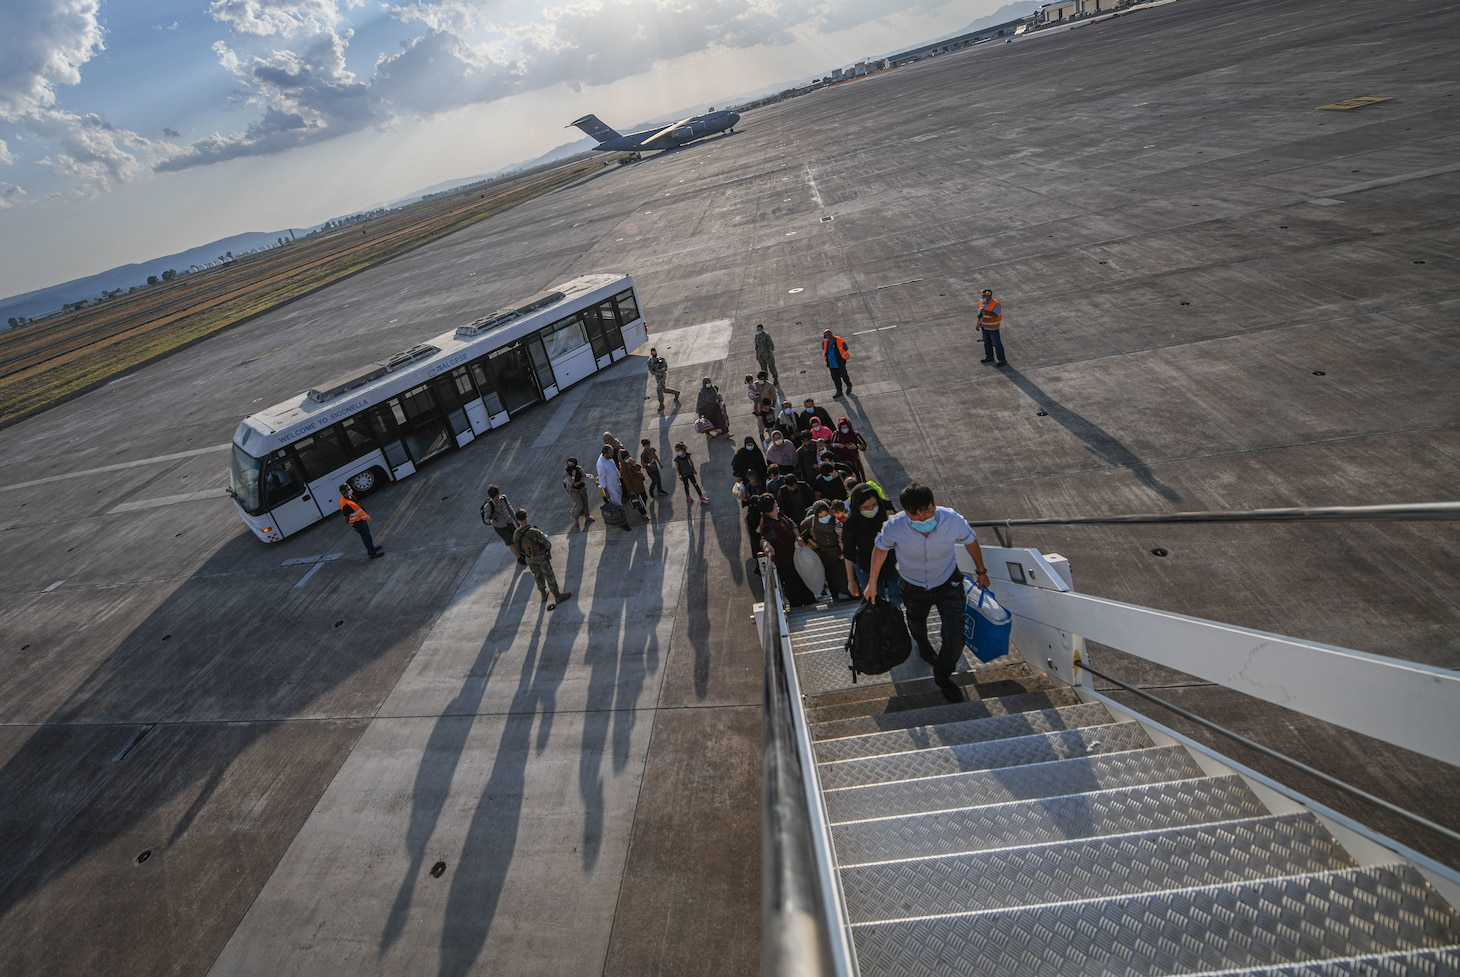 Evacuees from Afghanistan board a Boeing 777 bound for the United States from Naval Air Station Sigonella, Aug. 28, 2021. NAS Sigonella is currently supporting the Department of State mission to facilitate the safe departure and relocation of U.S. citizens, Special Immigration Visa recipients, and vulnerable populations from Afghanistan.